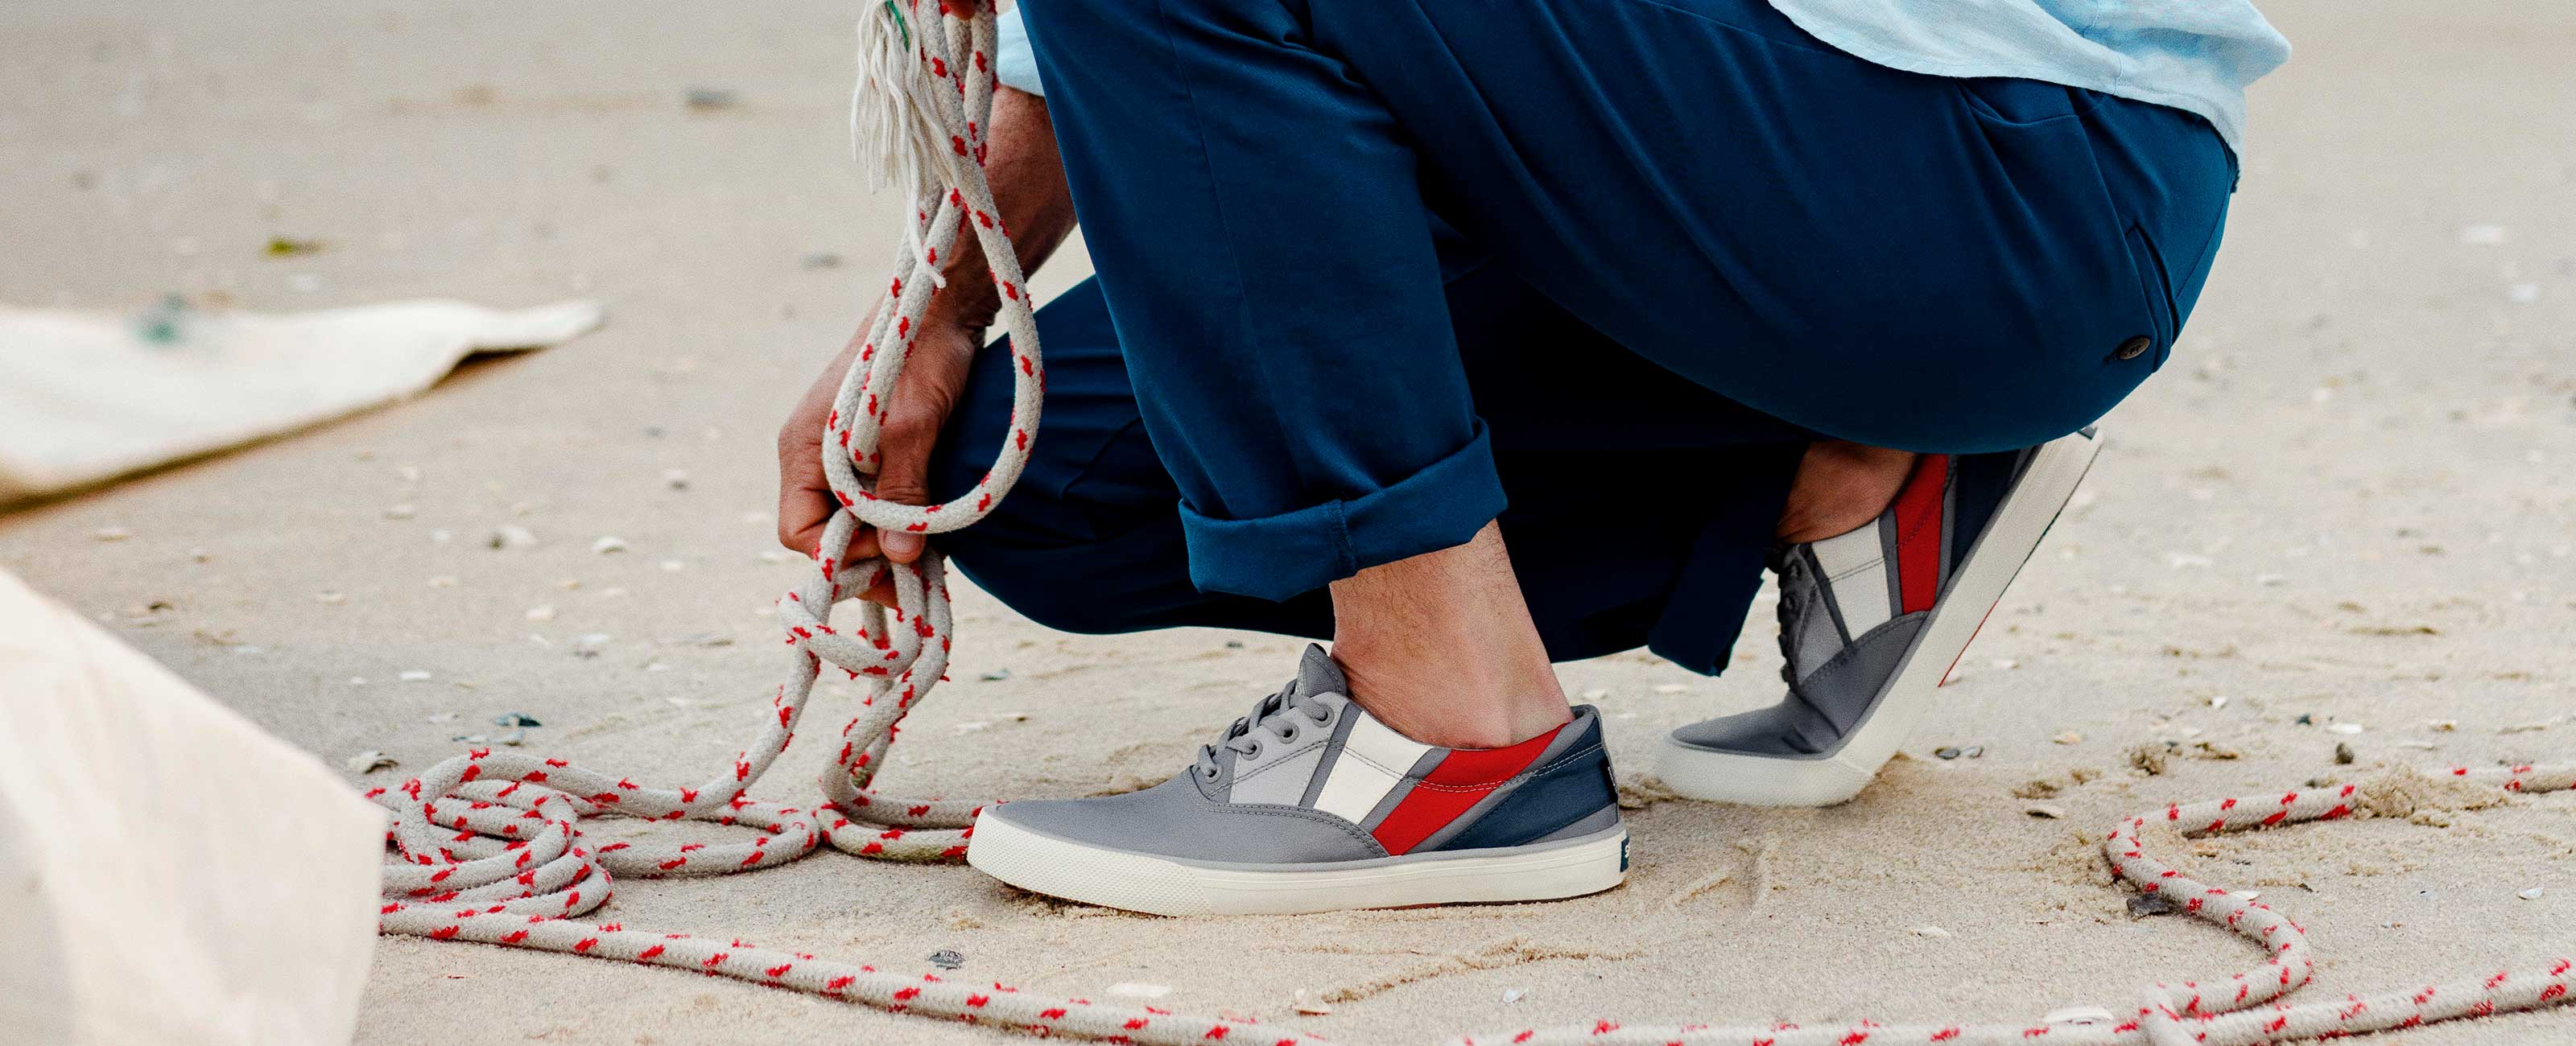 Eco-Friendly Shoes Made from Recycled